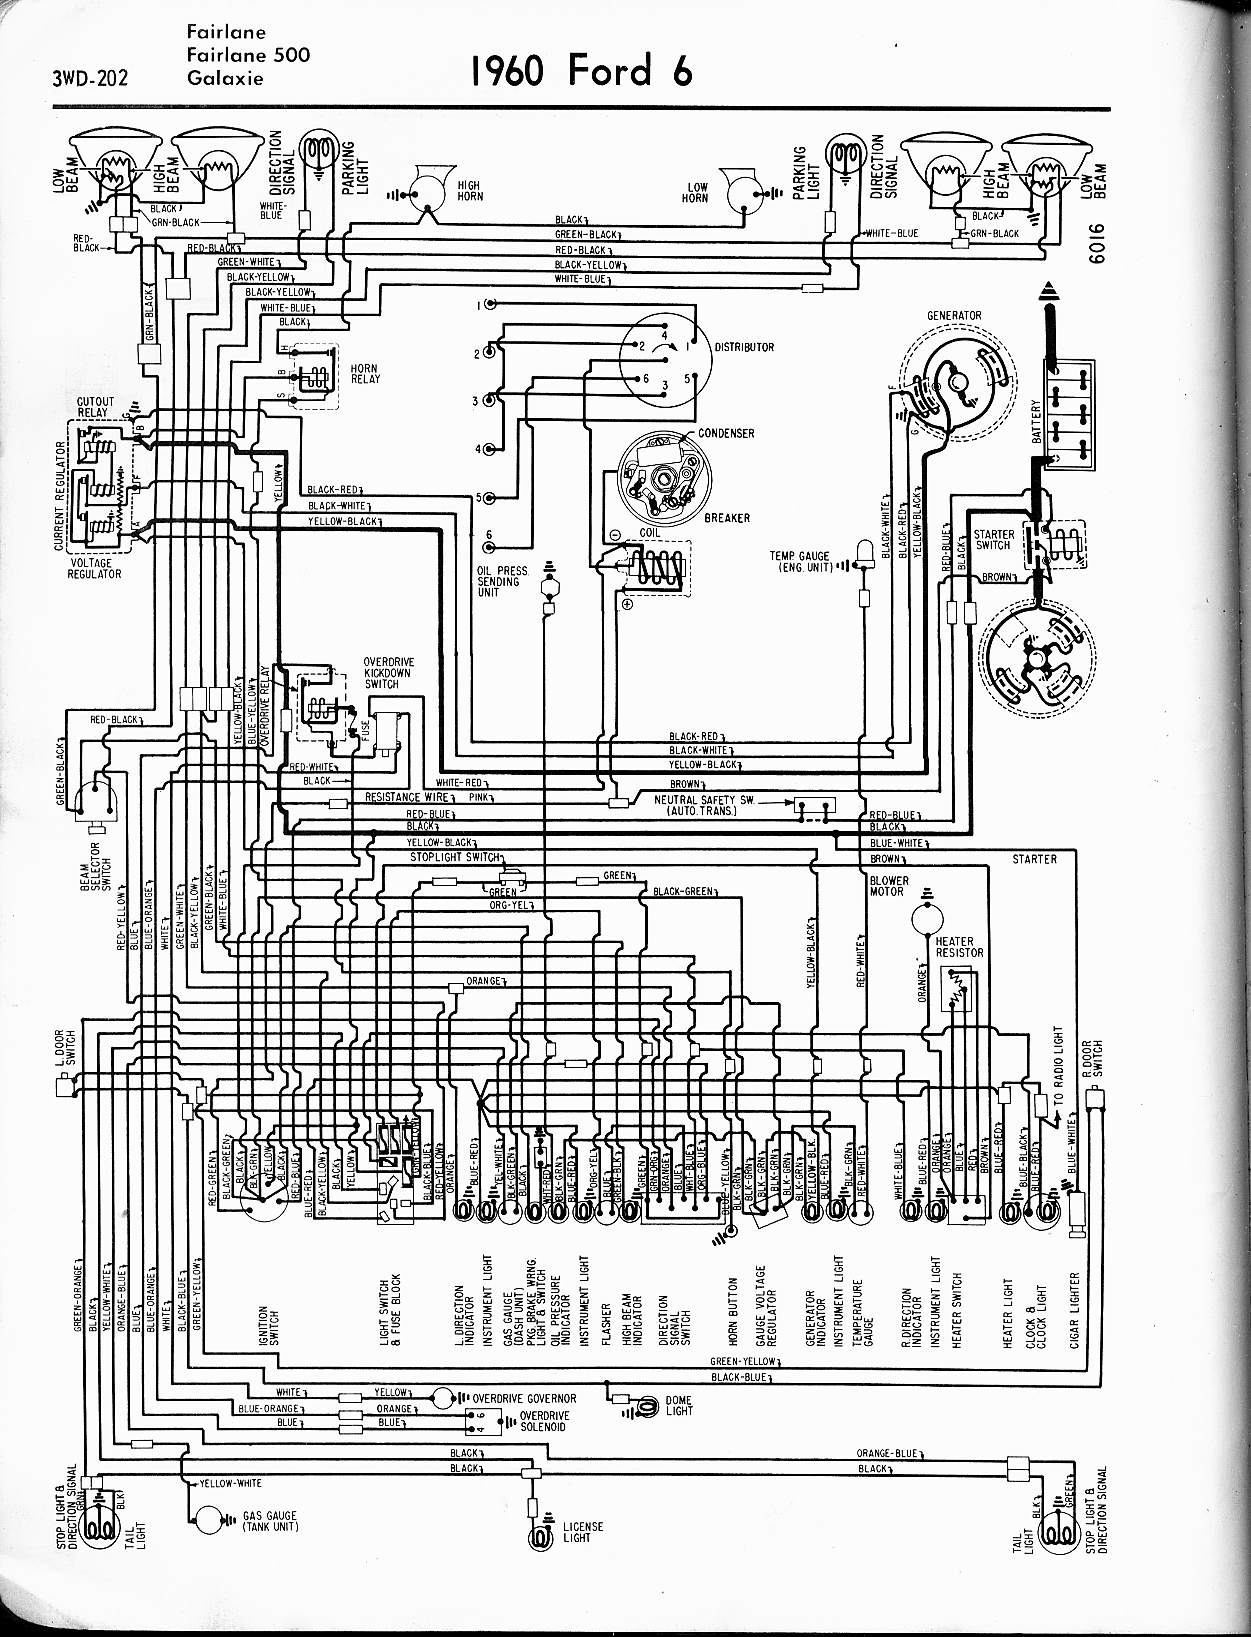 MWire5765 202 57 65 ford wiring diagrams Ford 4000 Gas Tractor Wiring Diagram at reclaimingppi.co